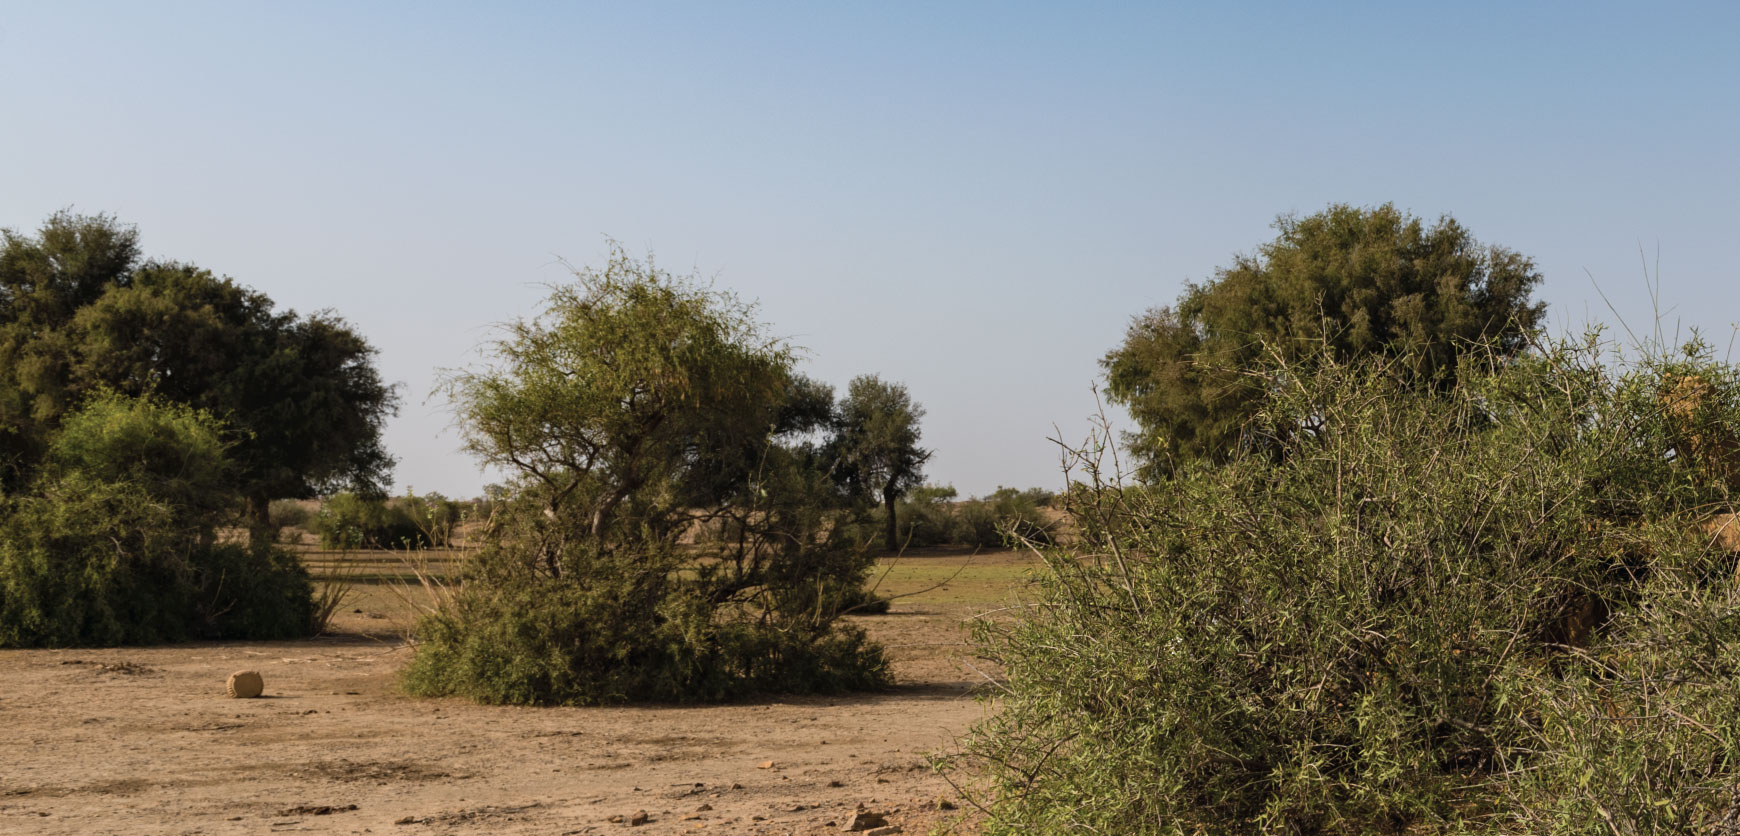 The Desert National Park – The Great Indian Bustard Trail